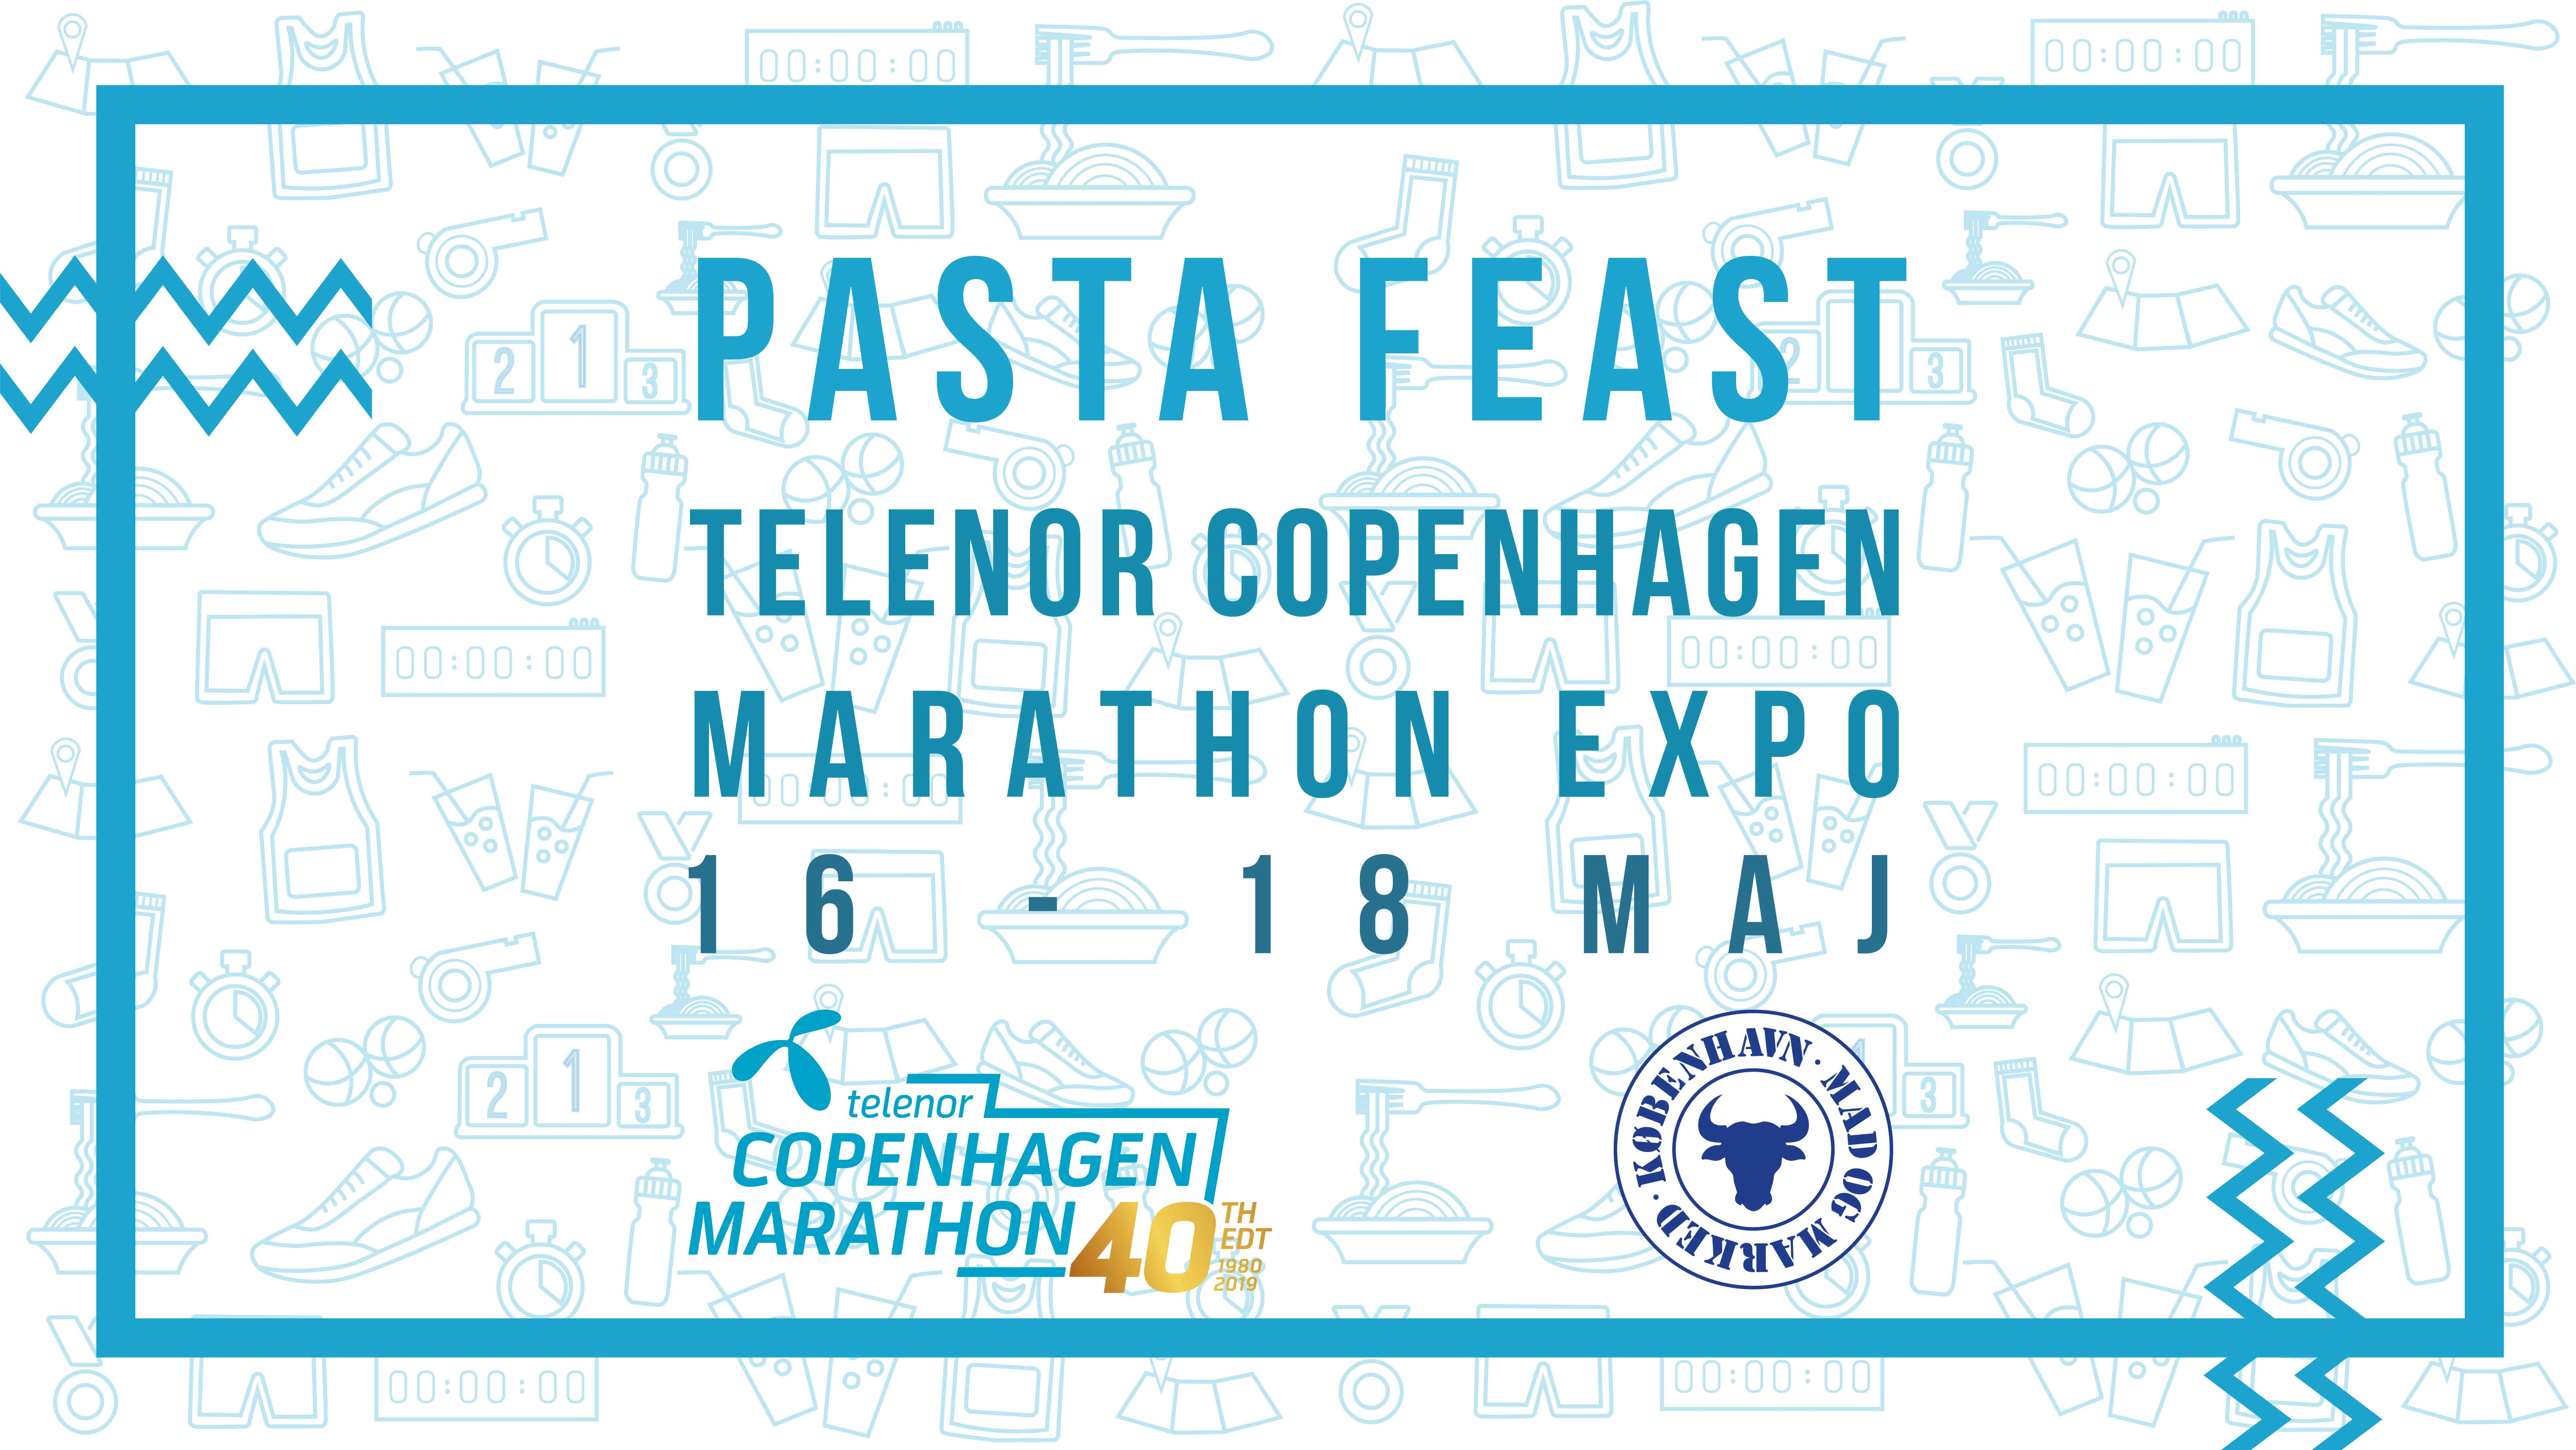 Pasta Feast at Telenor Copenhagen Marathon Expo 2019